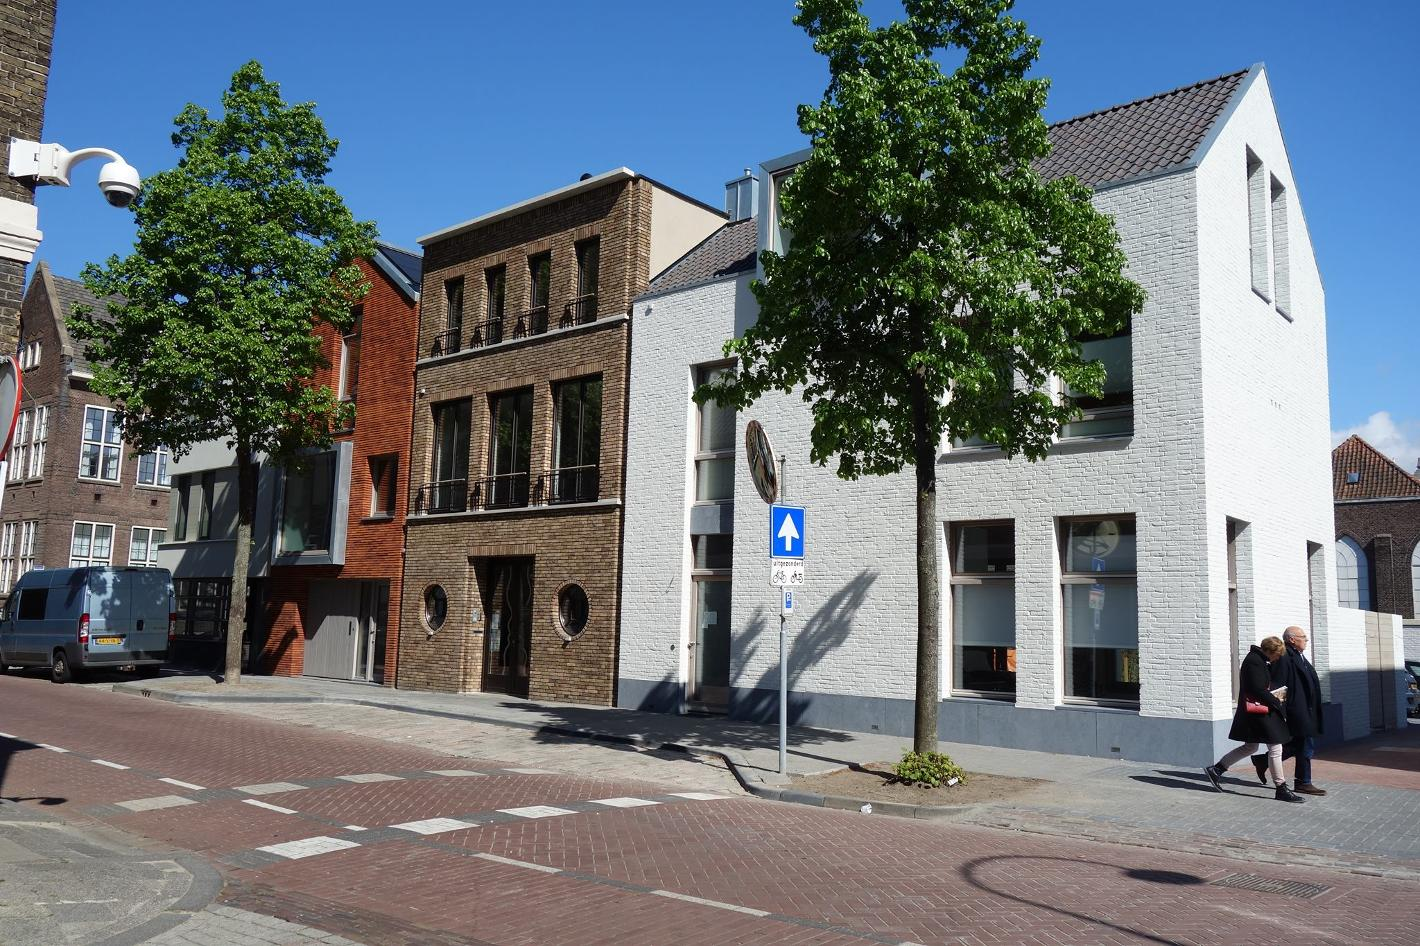 Photo B&B Arthouse Dordrecht in Dordrecht, Sleep, Spending the night - #1